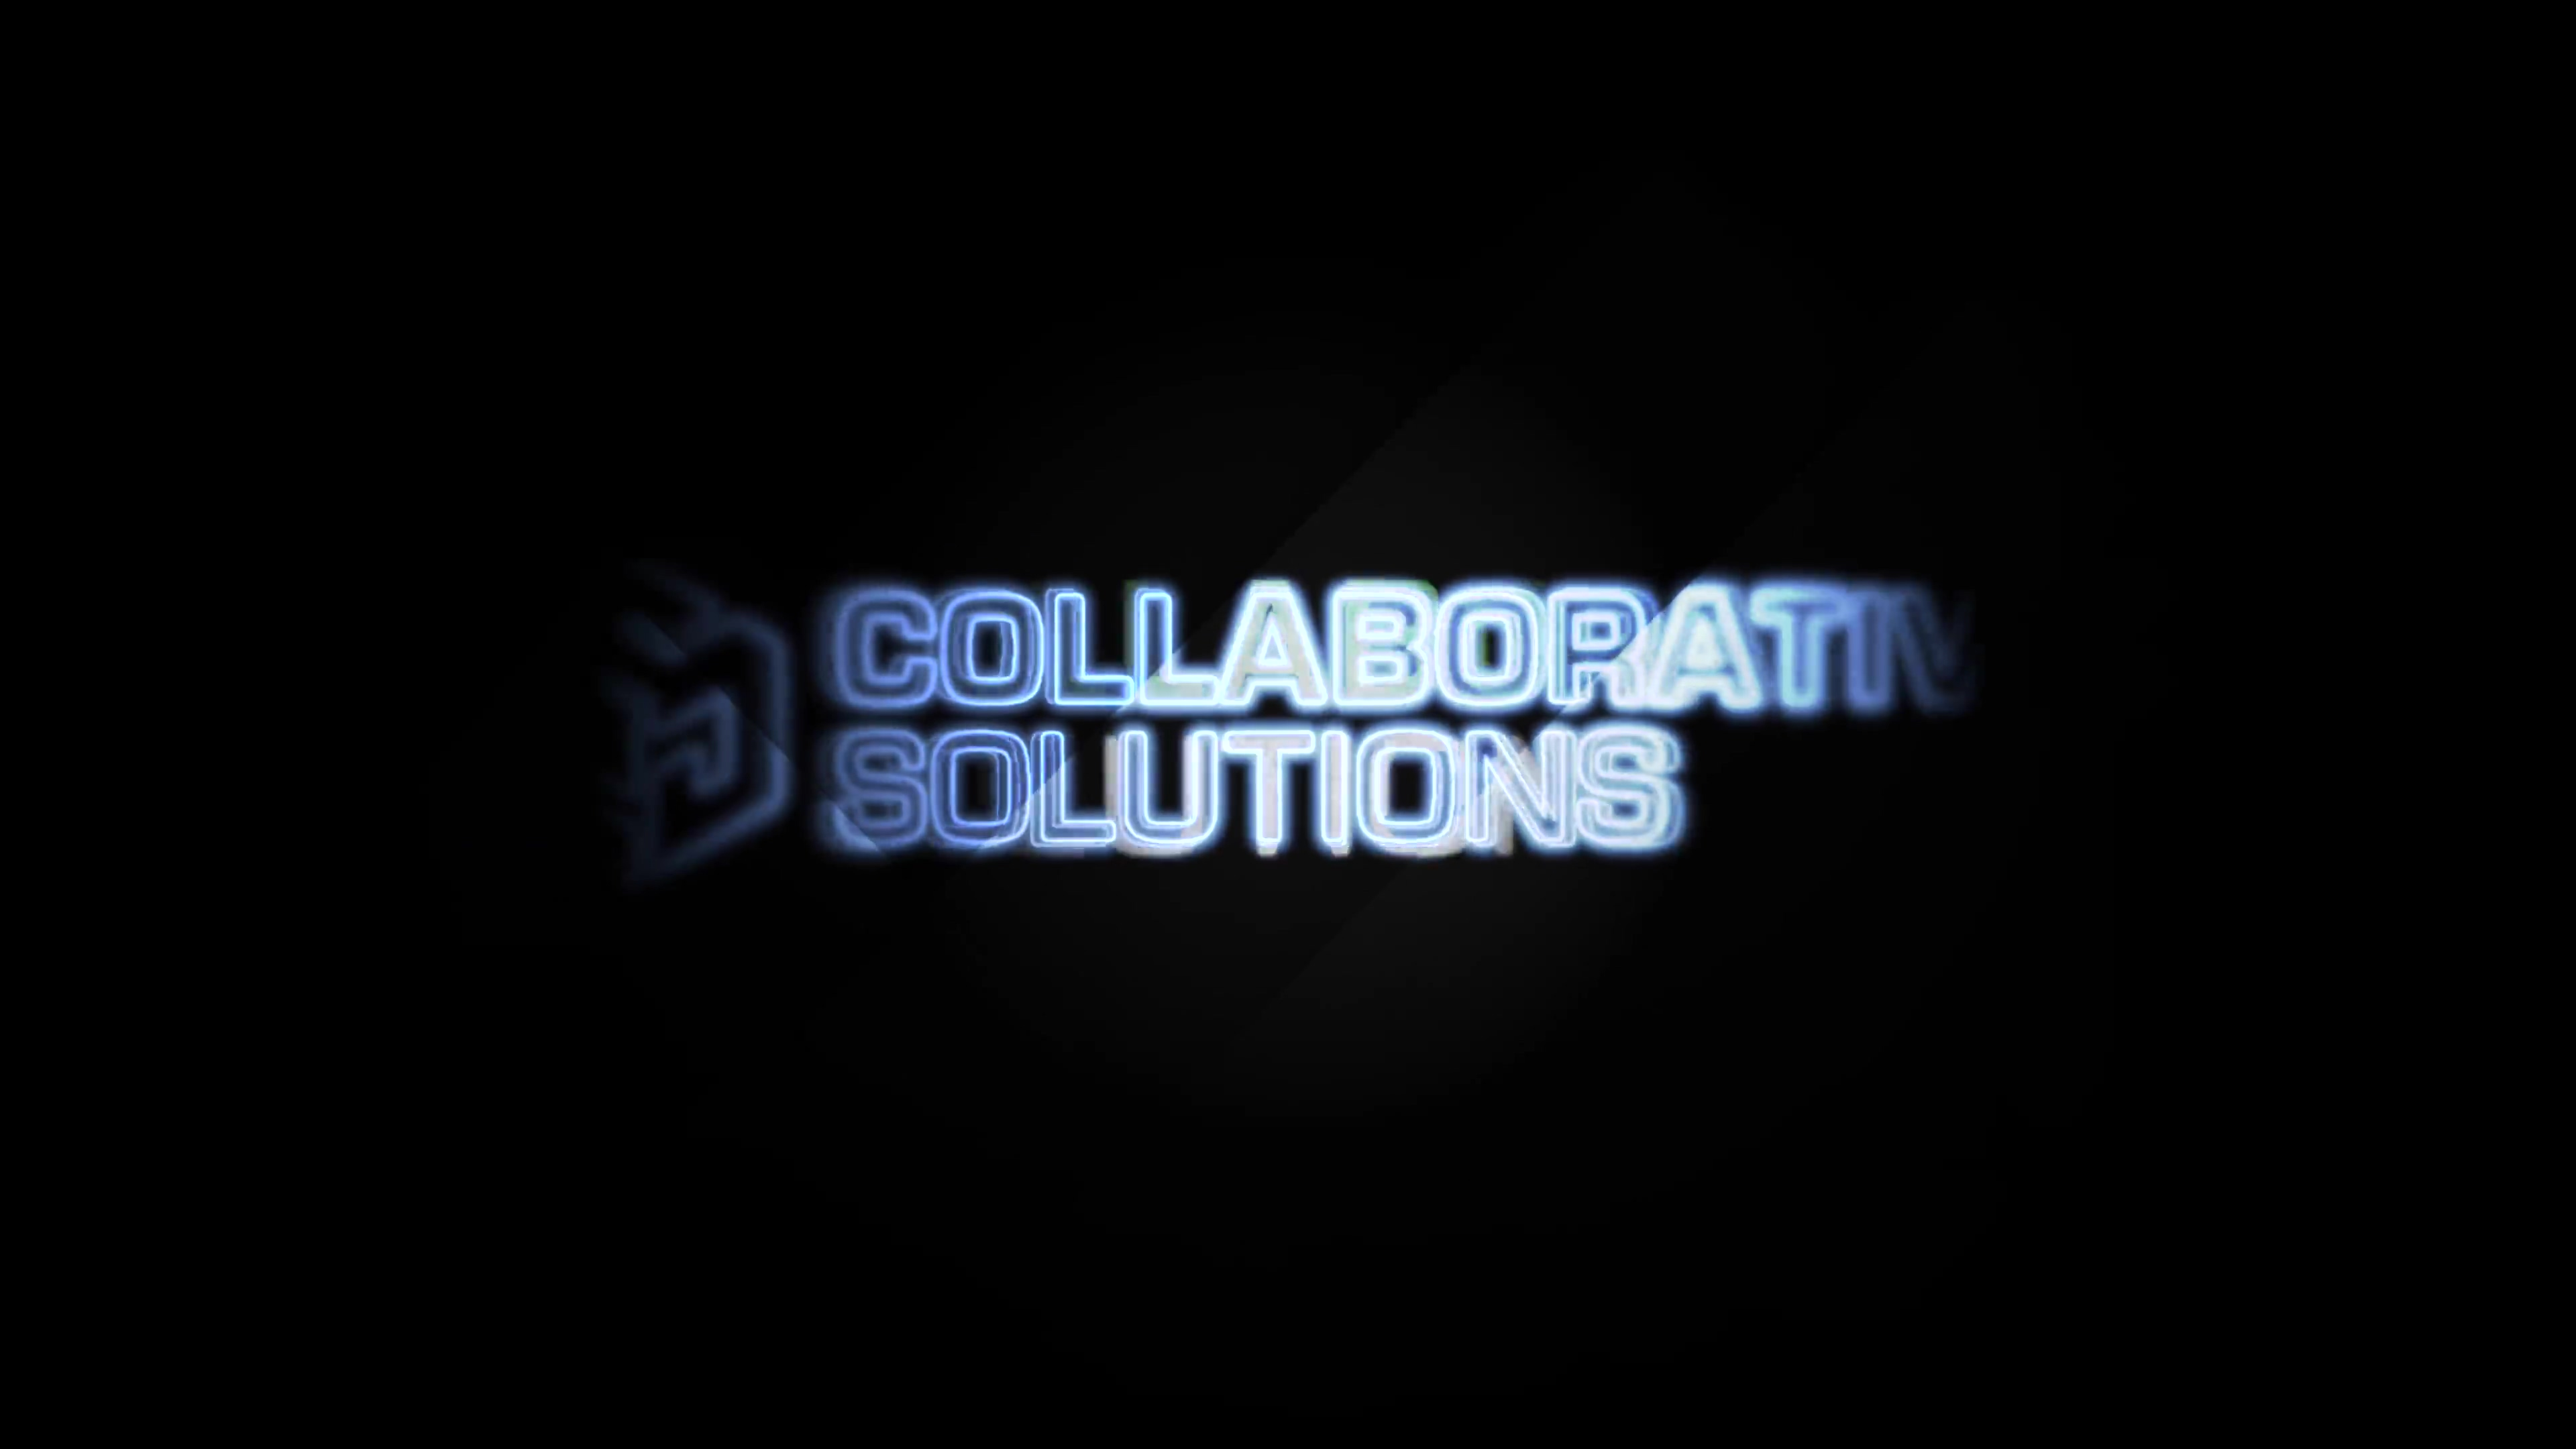 Collaborative Solutions - Rising Final Updated 1.23